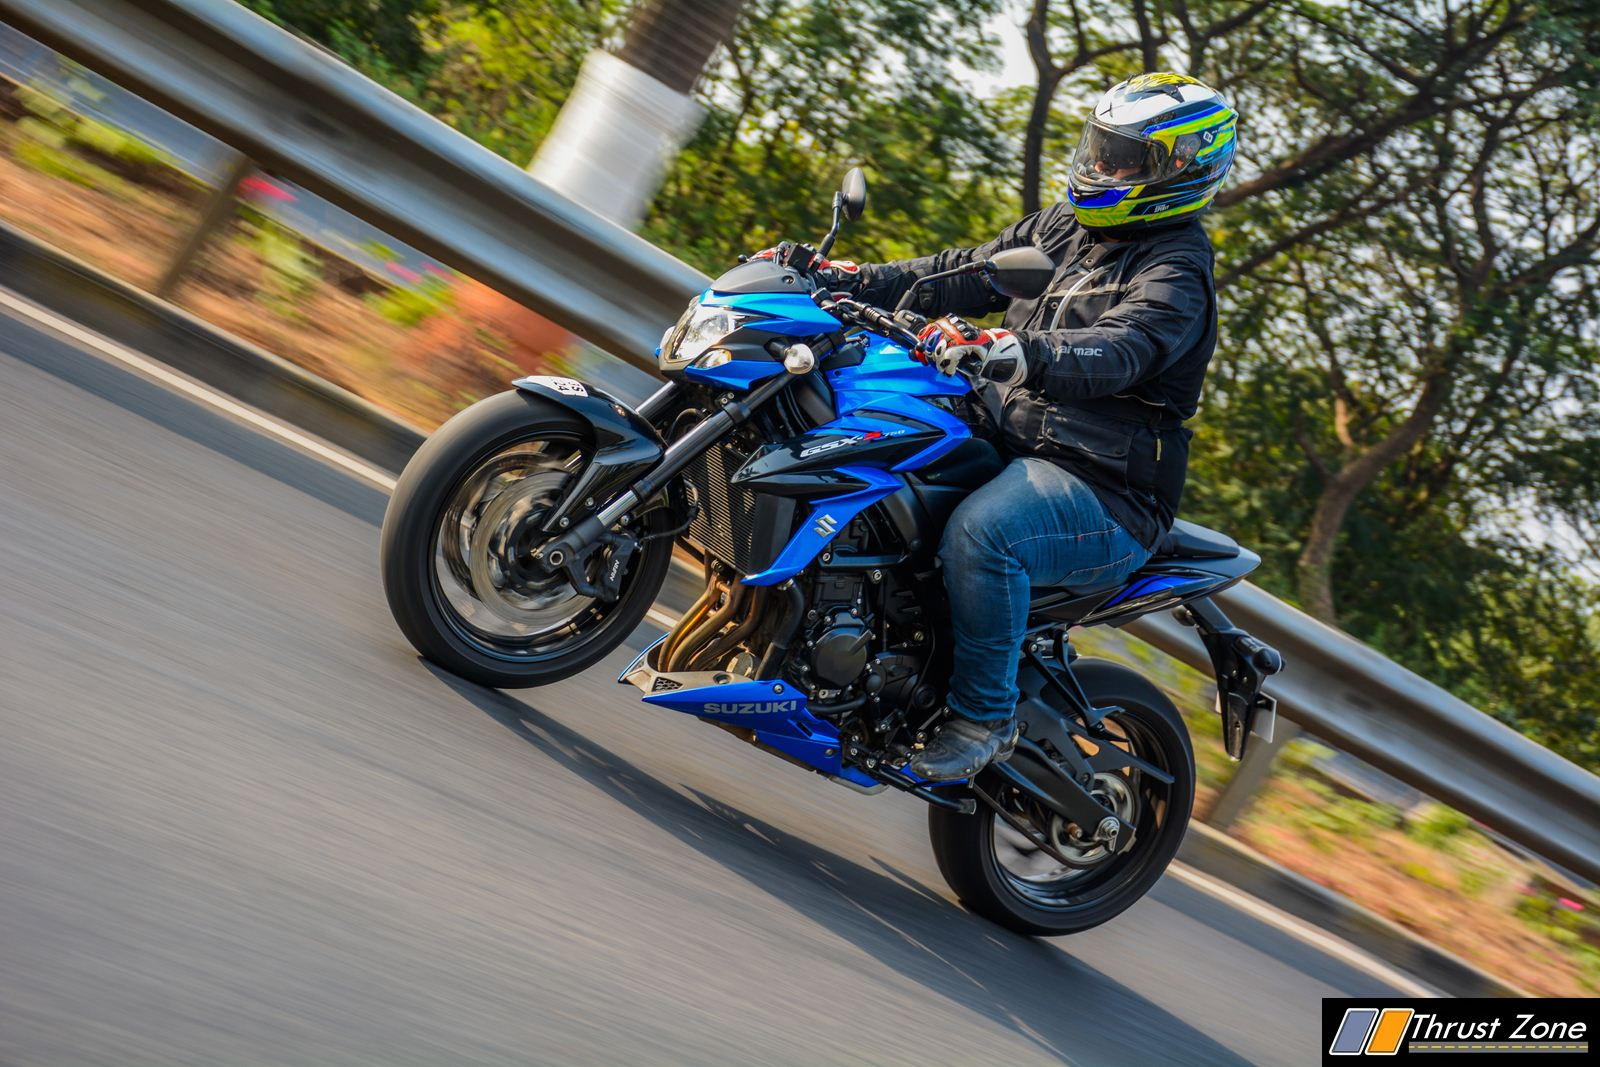 https://www.thrustzone.com/wp-content/uploads/2018/12/2018-Suzuki-GSX-750-INDIA-Review-2.jpg